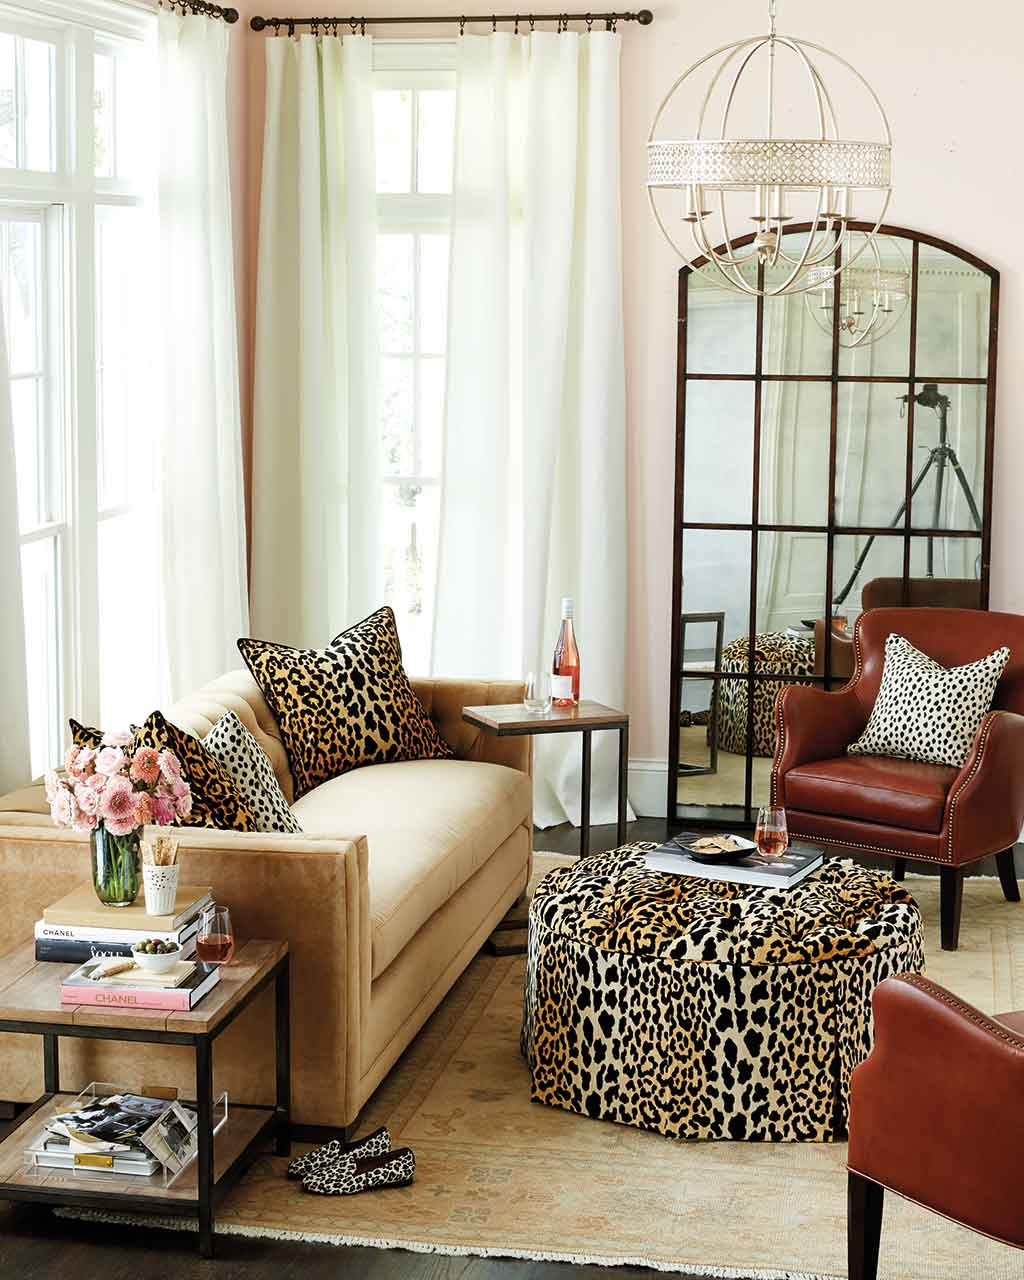 Big Couch Small Door 15 Ways To Layout Your Living Room How To Decorate